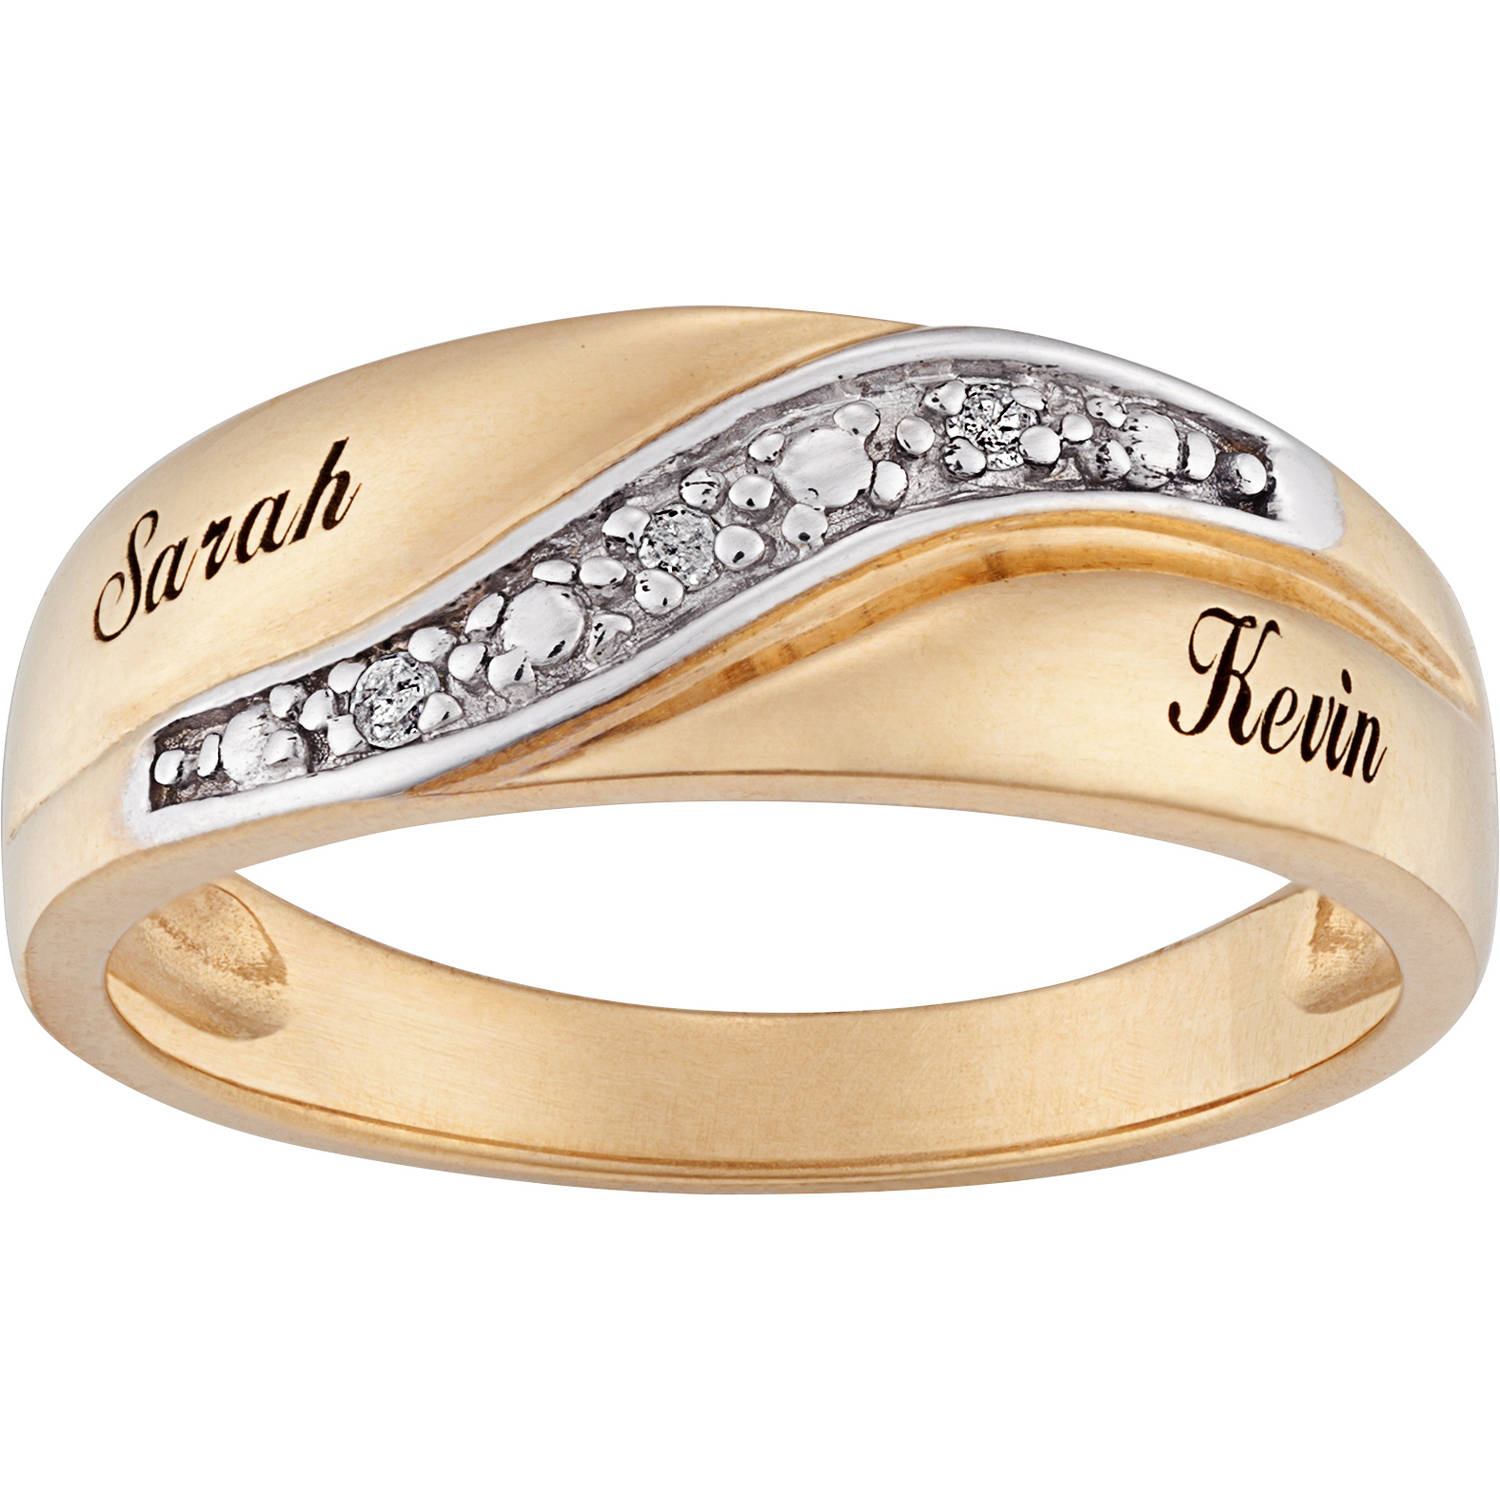 Personalized Men's Diamond Accent Name Wedding Band 18kt Gold Over Sterling Silver